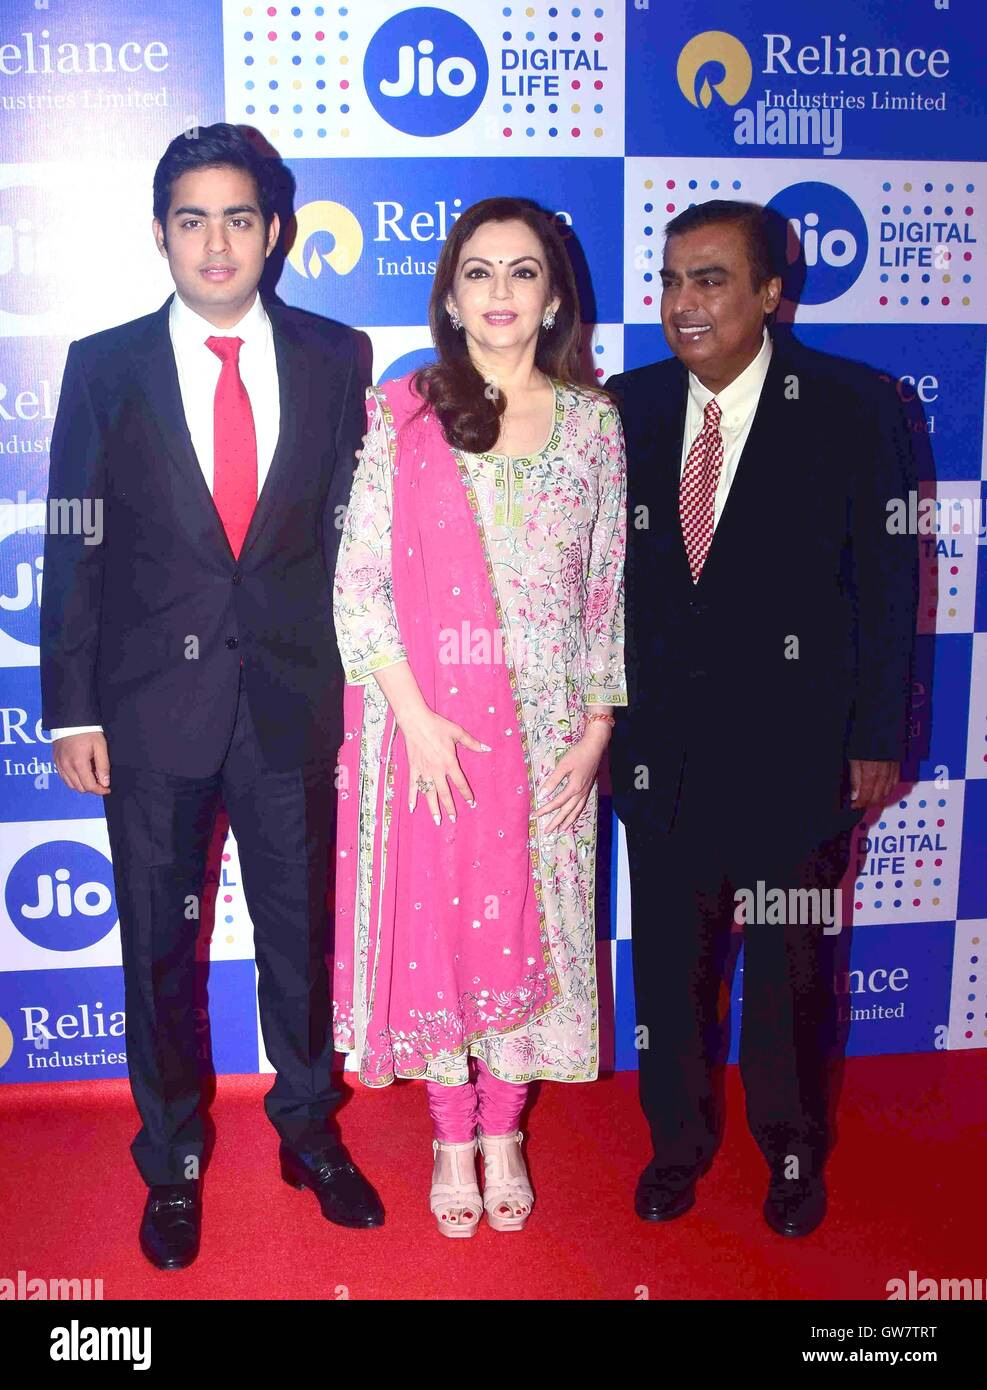 objective of reliance company of ambani The objective of these programs is to keep the investment community well  informed about our strategy, management actions, and business development  this is.